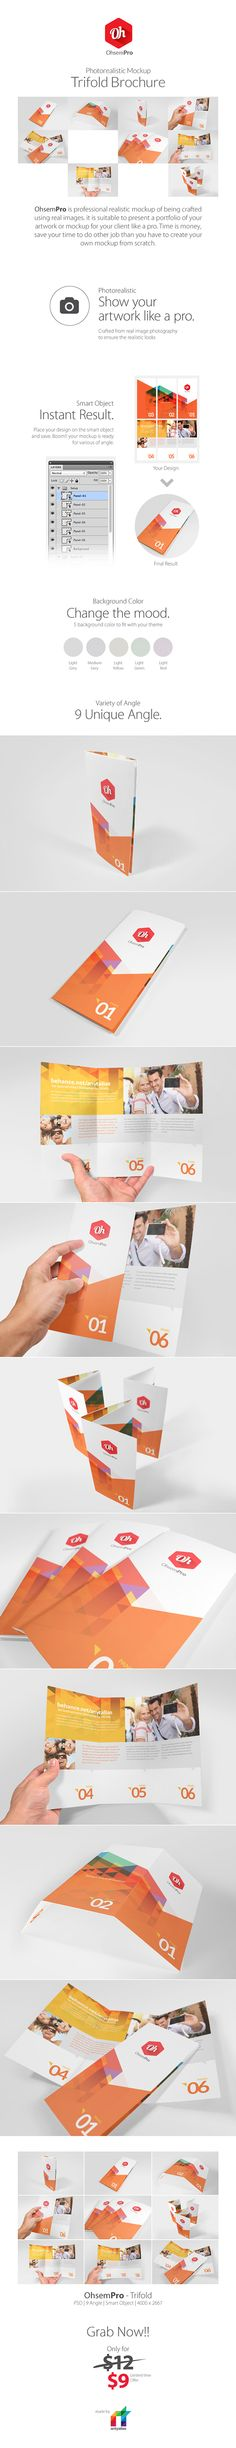 OhsemPro - Trifold Mockup on Behance